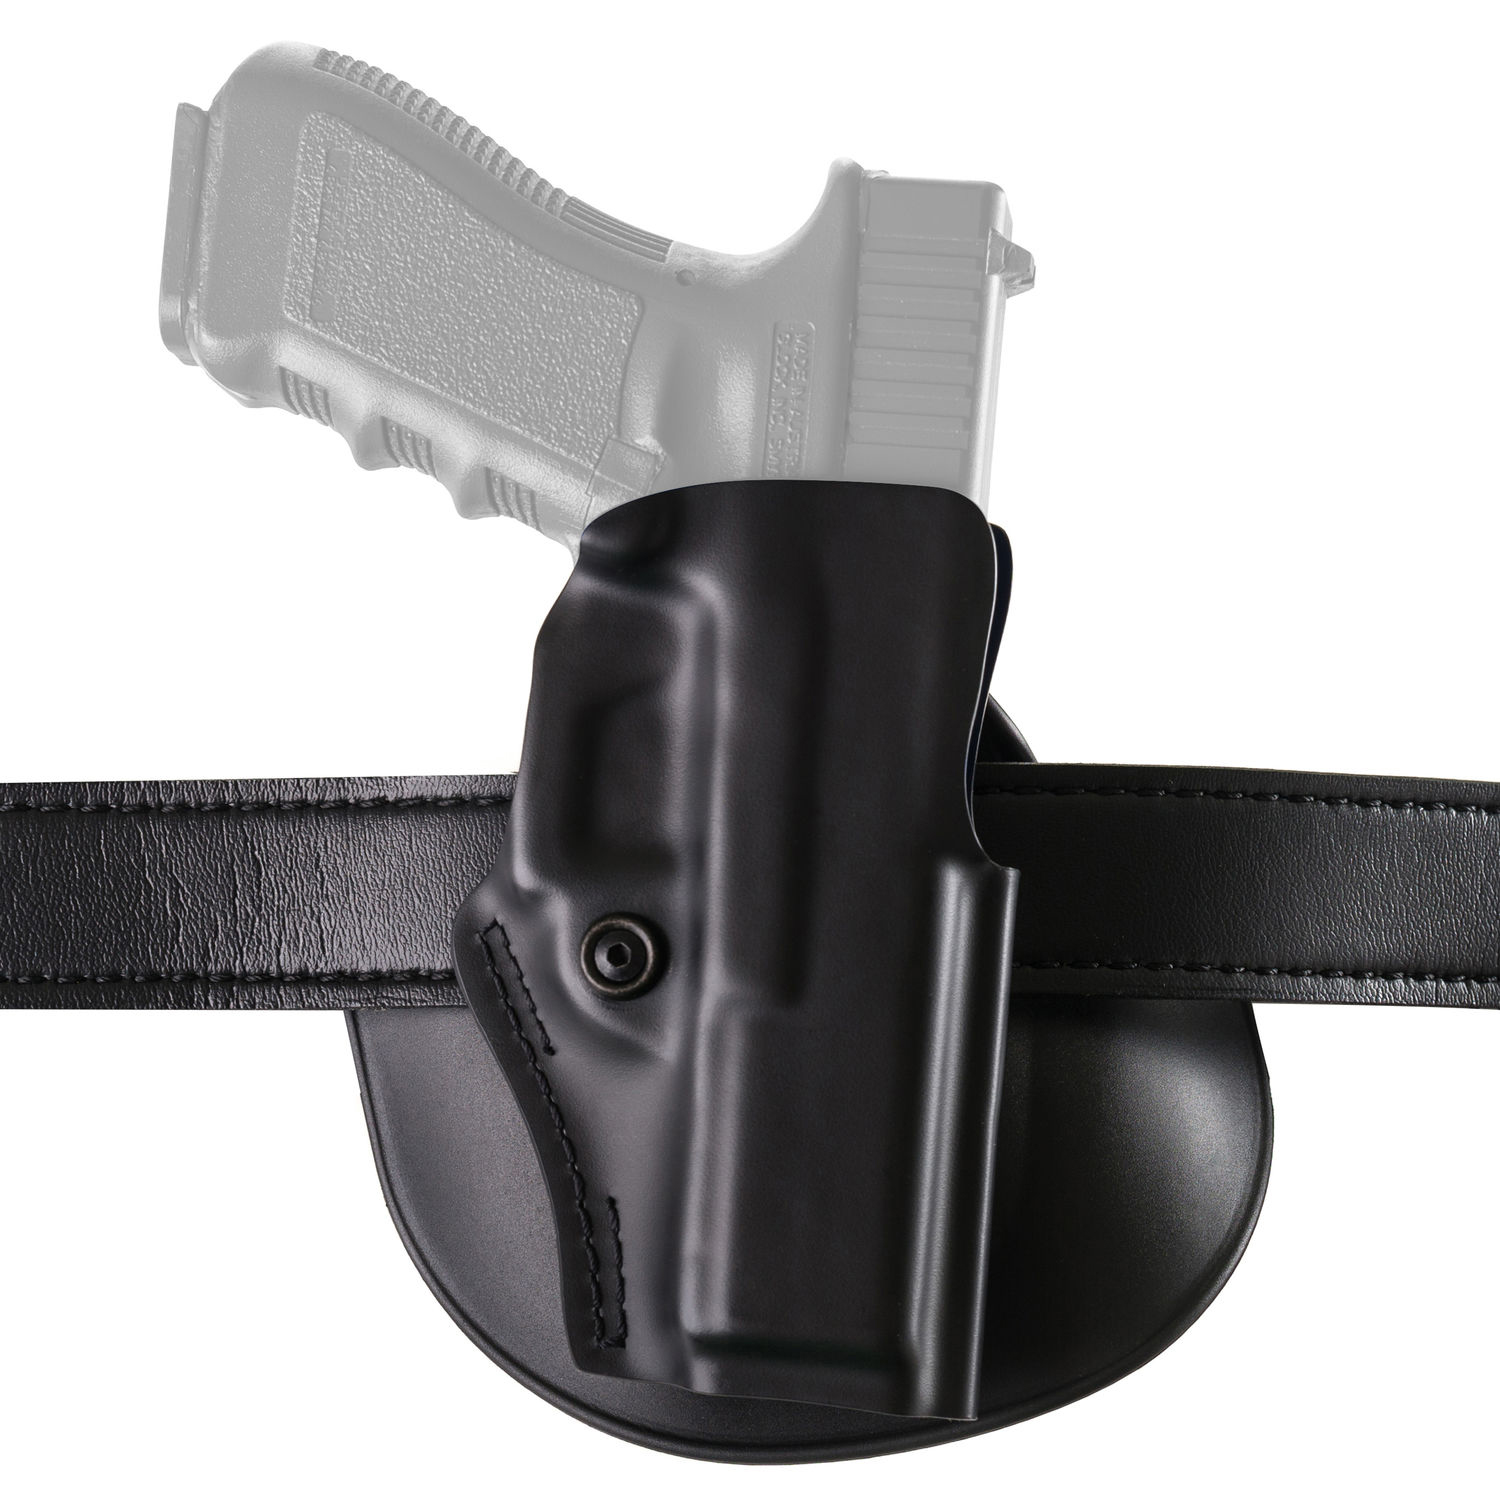 Safariland Model 5198 Open Top Concealment Holster, Glock 19/23